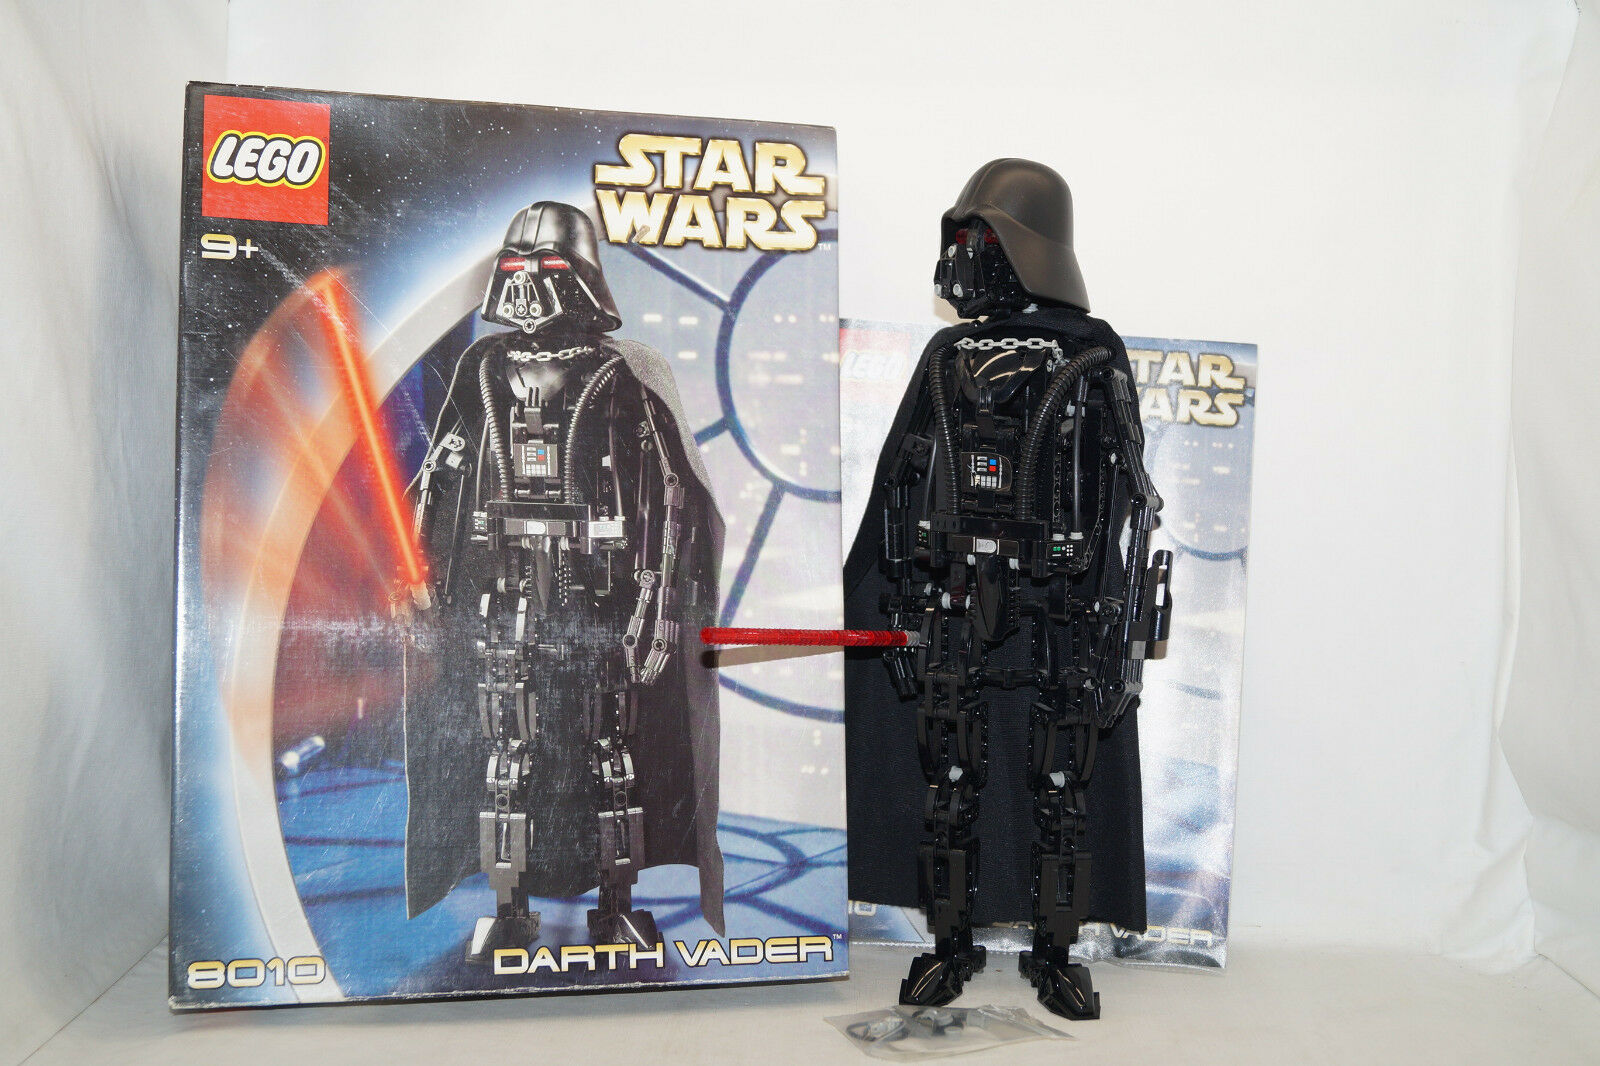 LEGO STAR WARS Technic 8010 Darth Vader